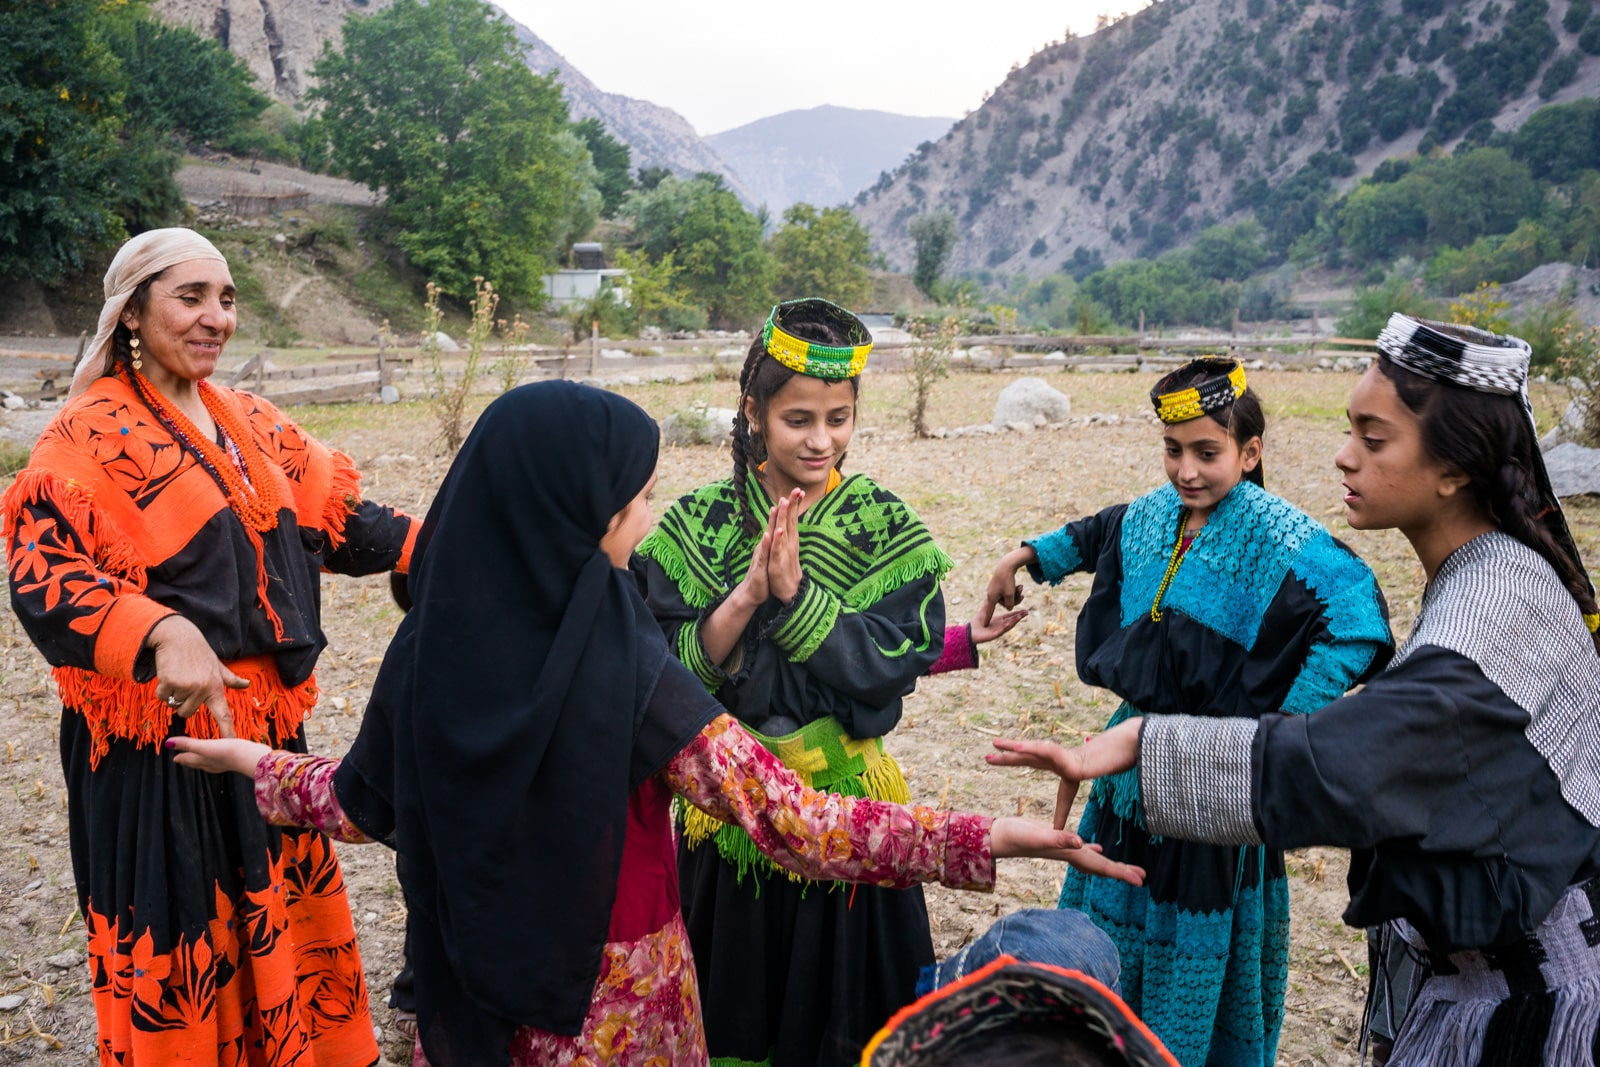 Kalasha girls in traditional outfit playing games